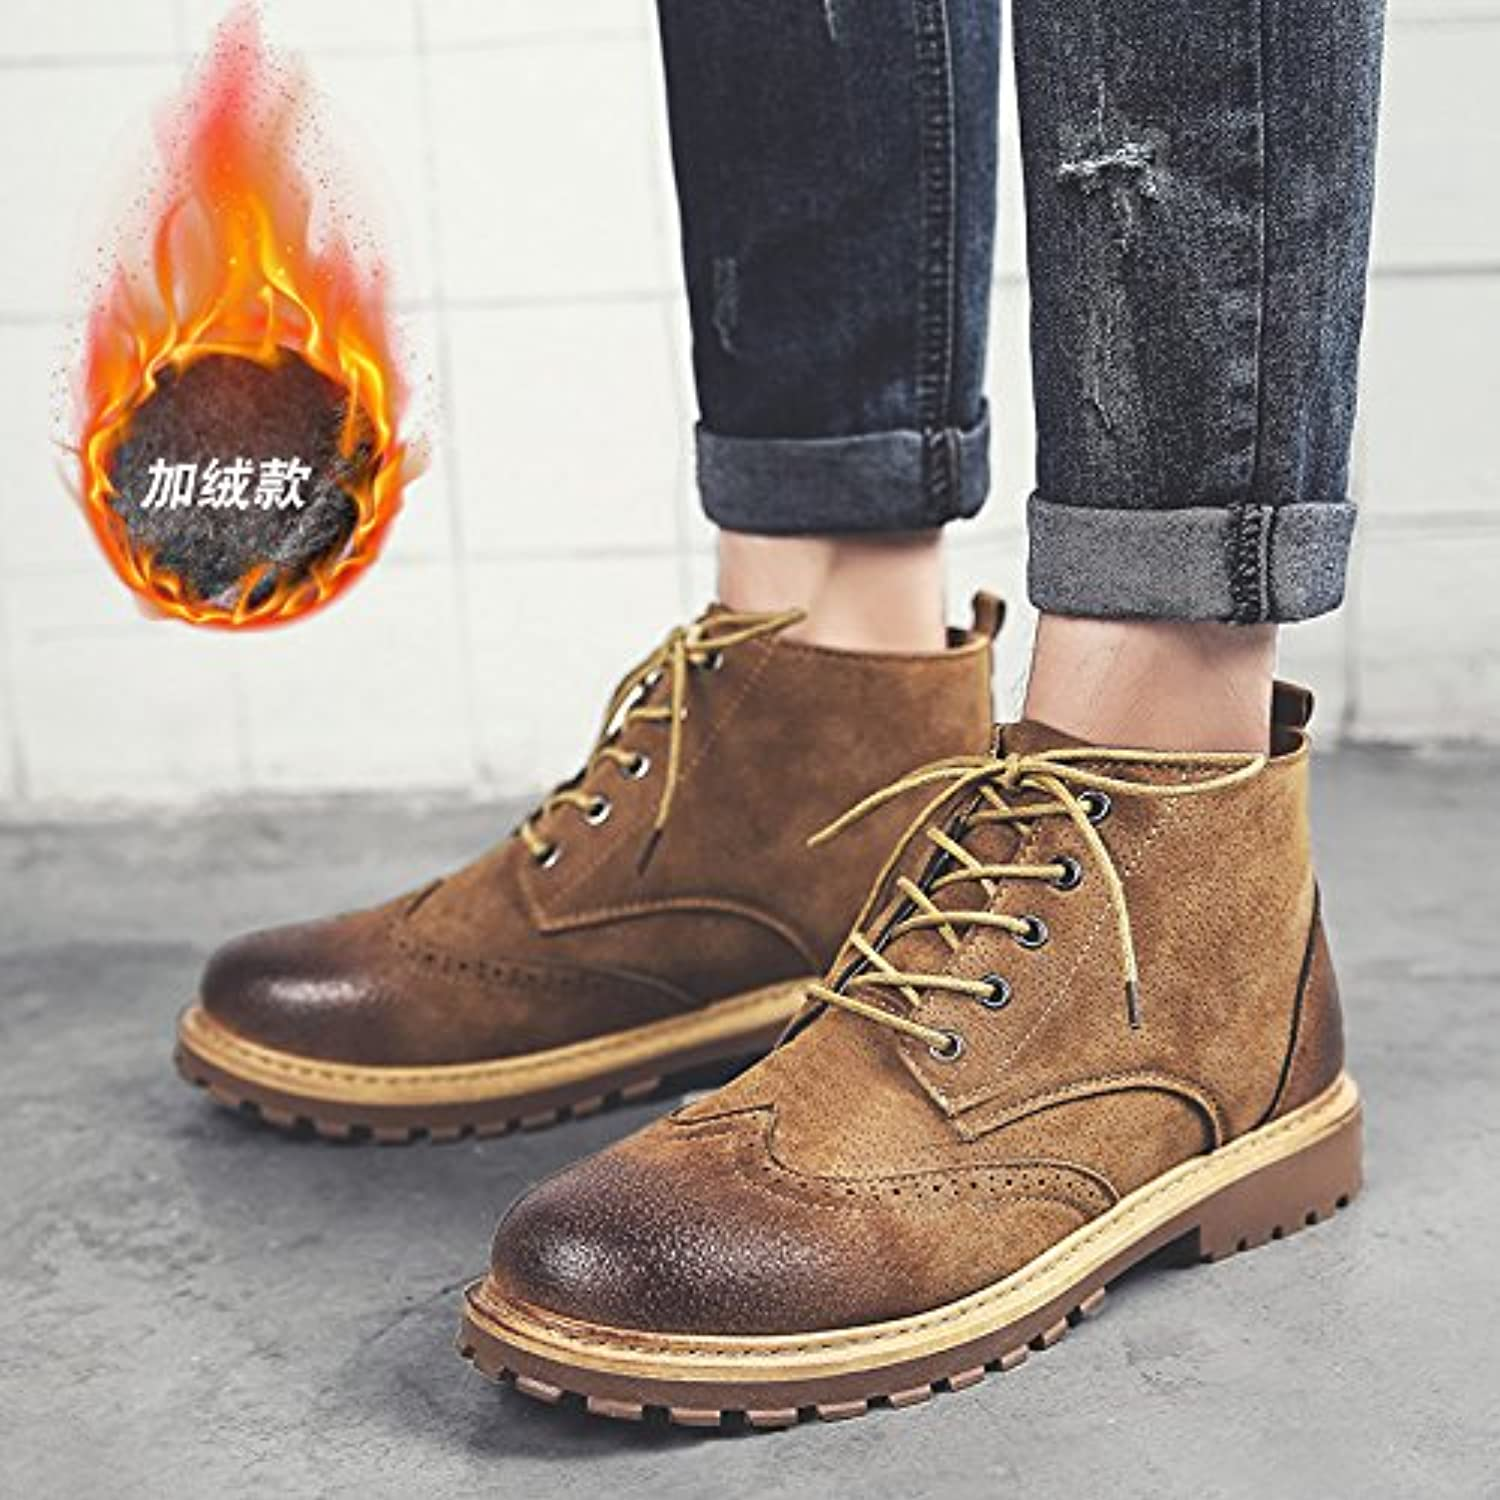 LOVDRAM Boots Men's Autumn Men'S Boots Cotton Warm Snow Boots Men'S shoes High Boots Retro Martin Boots Men'S Boots